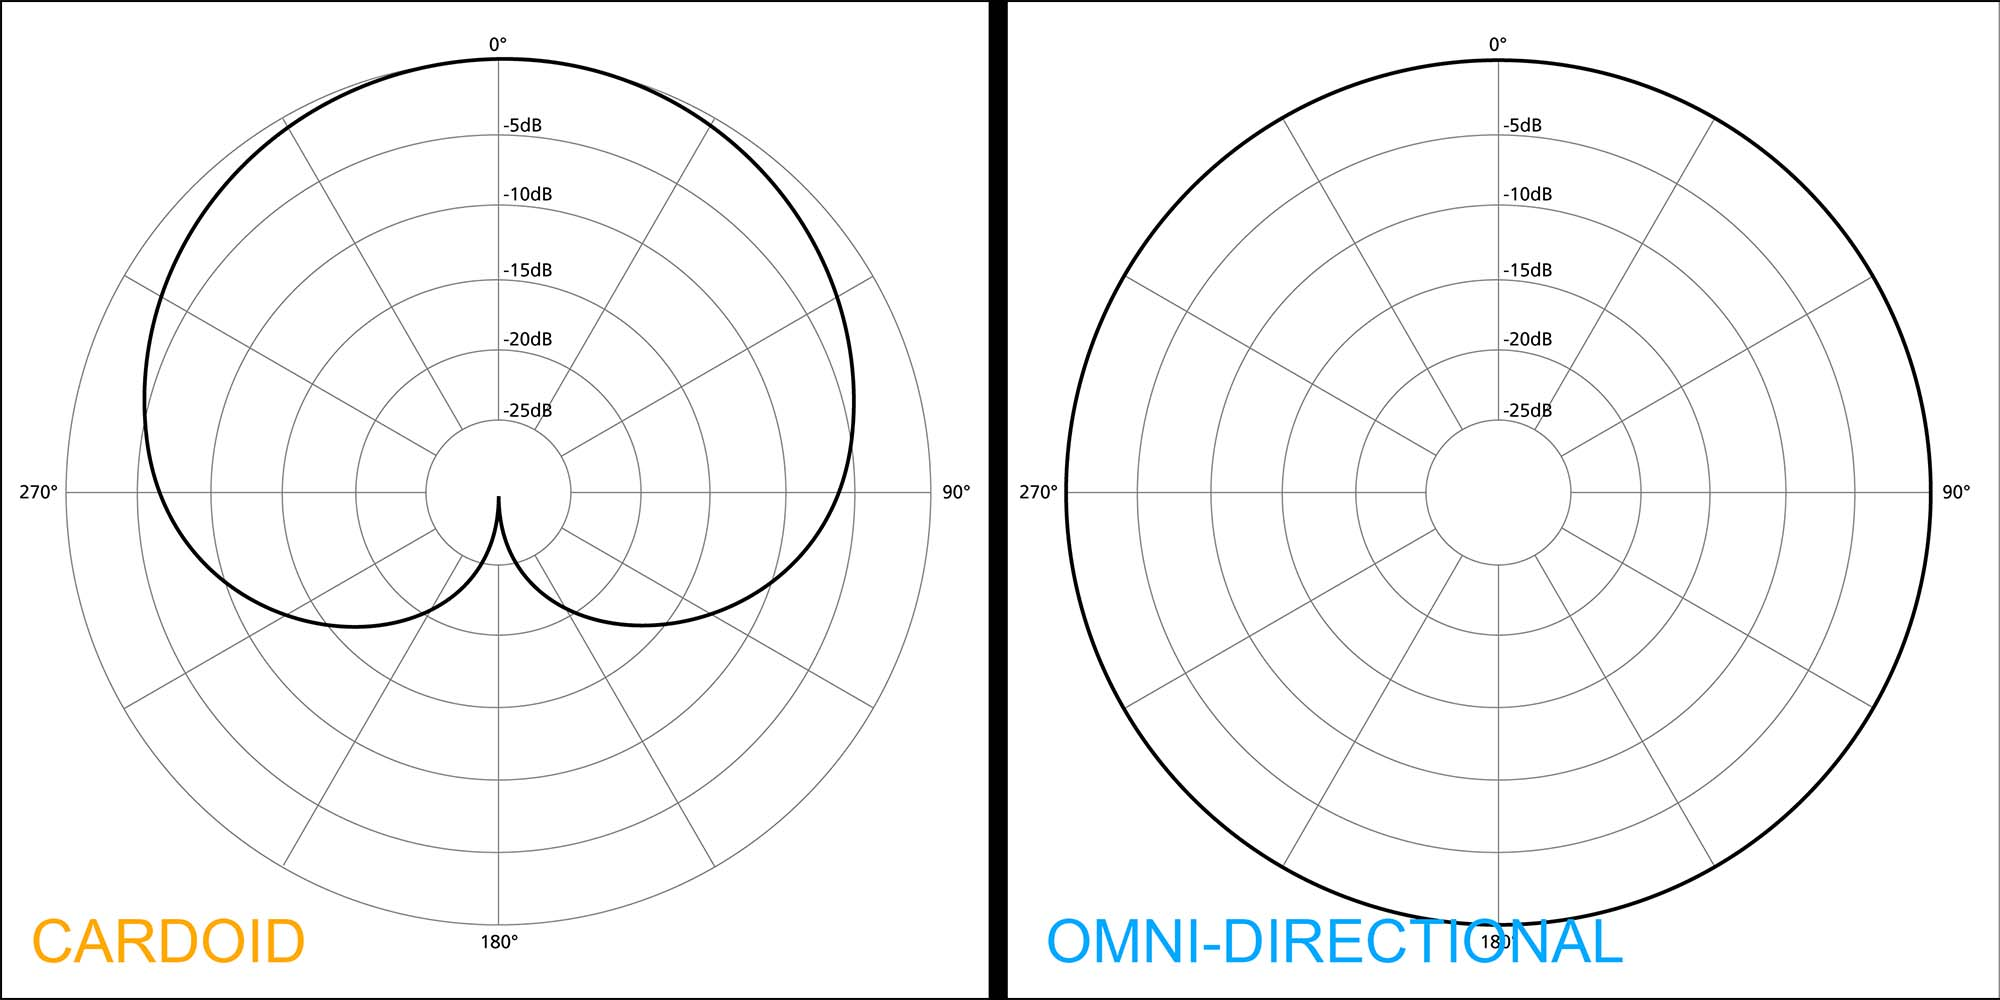 Polar pattern omni directional vs cardioid